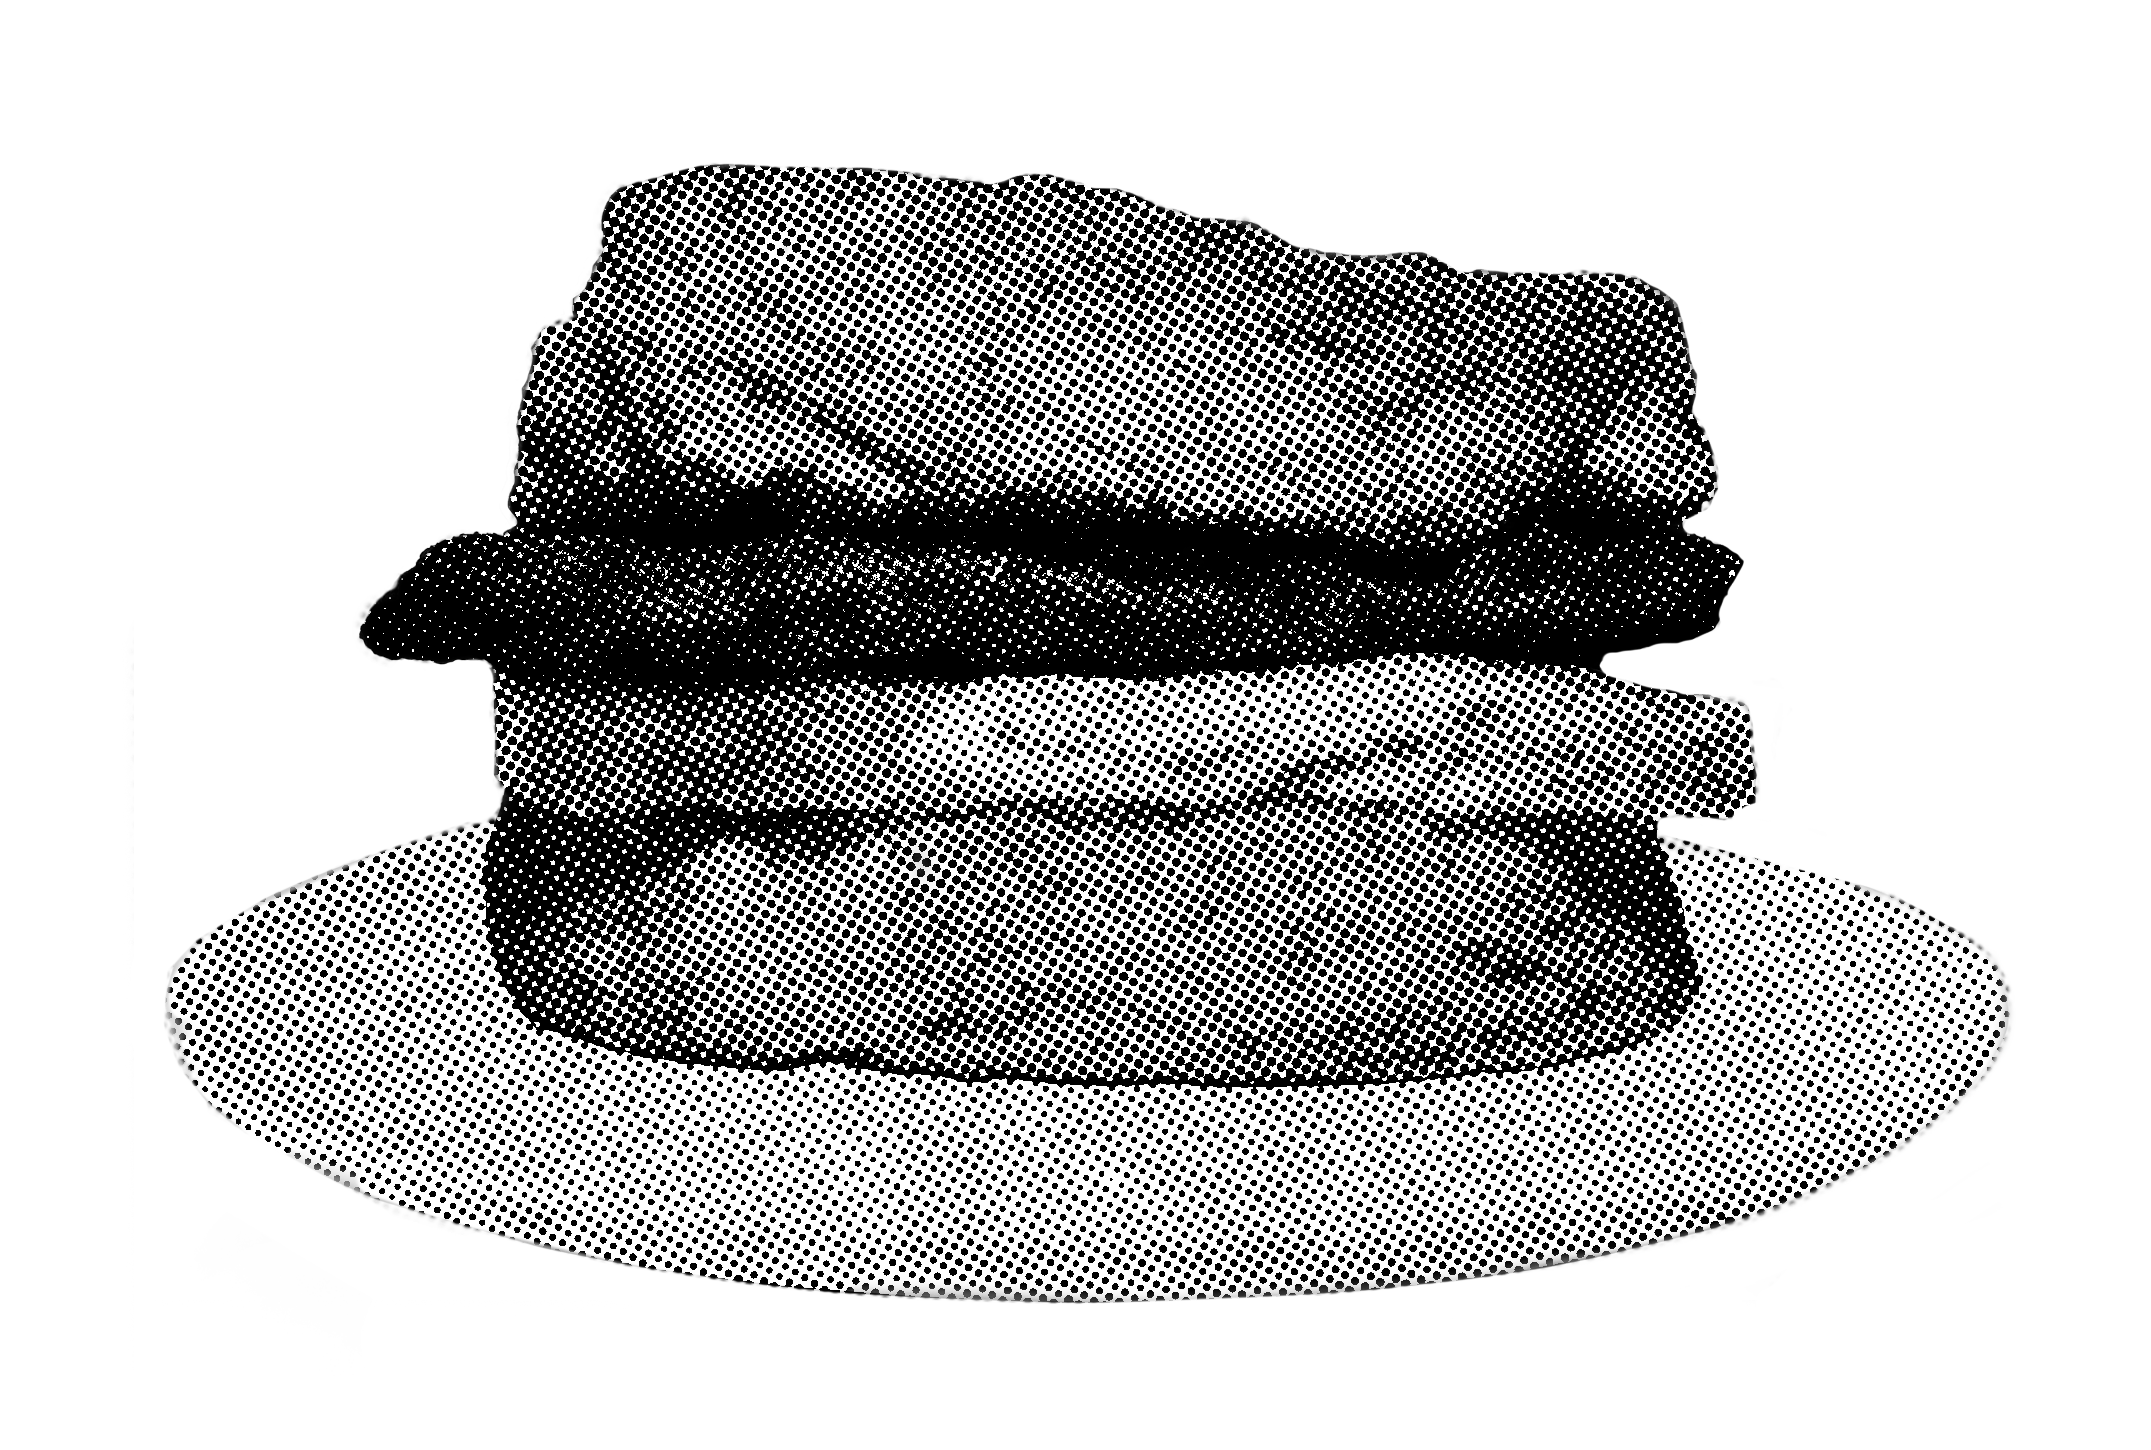 Let stand for 30 seconds in microwave. USE CAUTION before removing sandwich from HOT paper towel. Enjoy immediately.